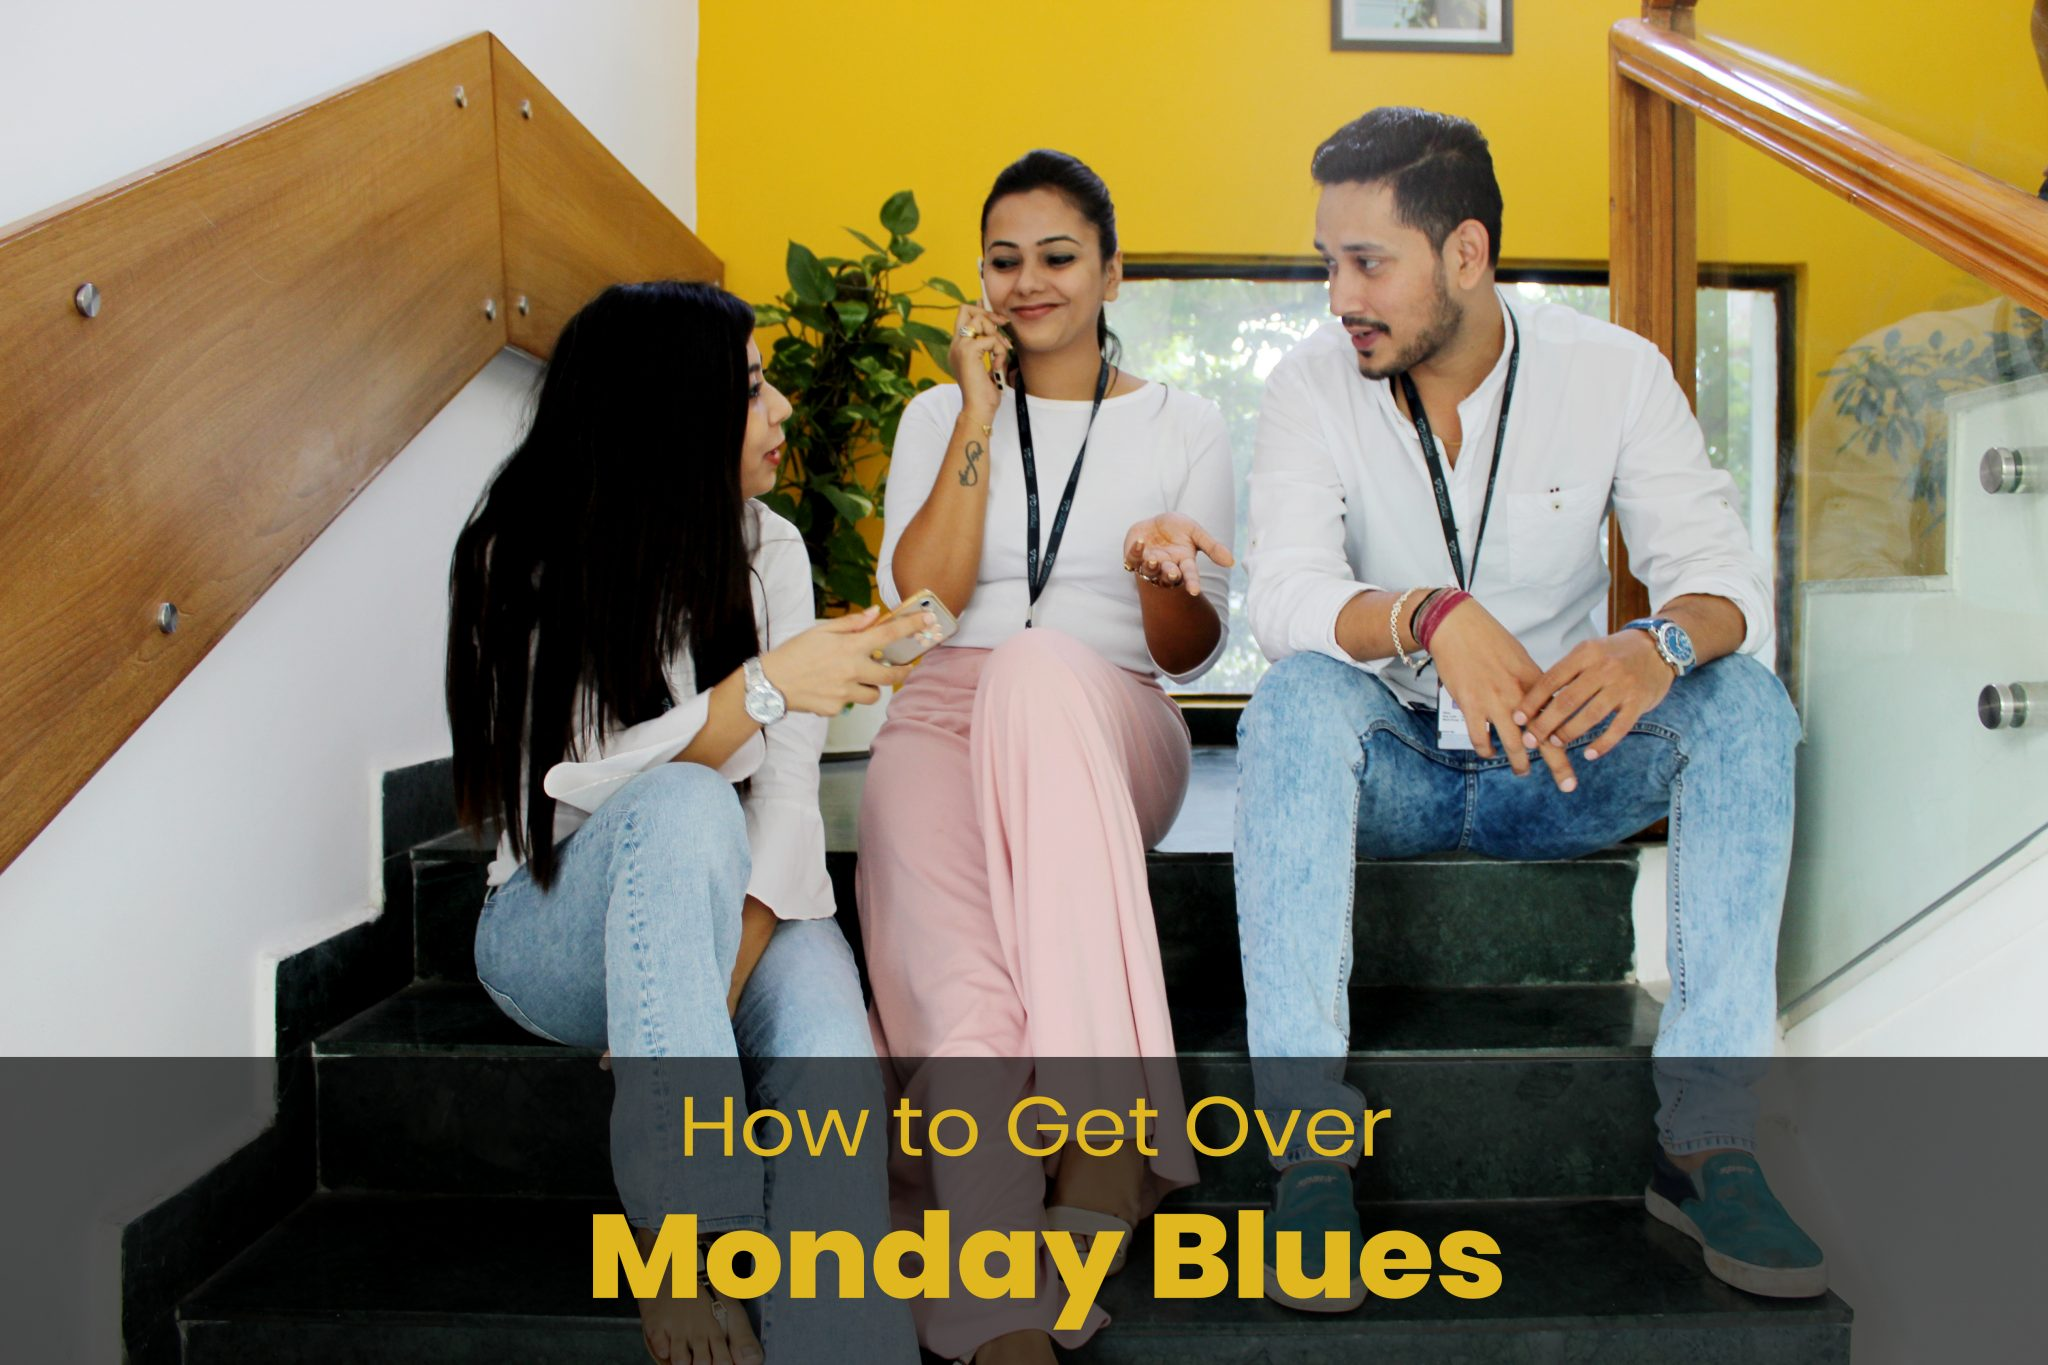 Learn how to get over Monday blues in ImpactQA